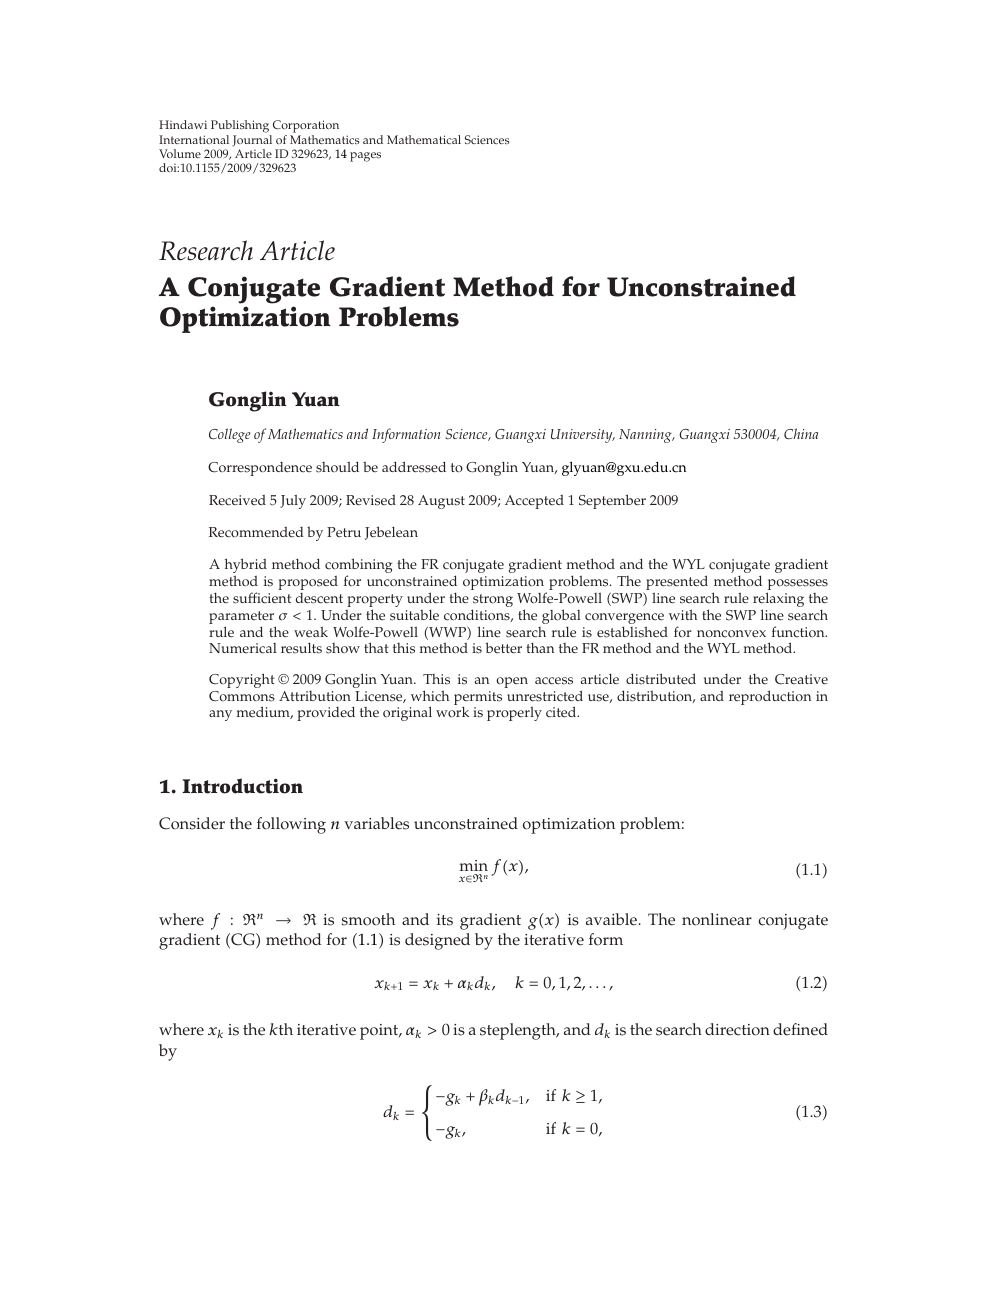 A Conjugate Gradient Method for Unconstrained Optimization